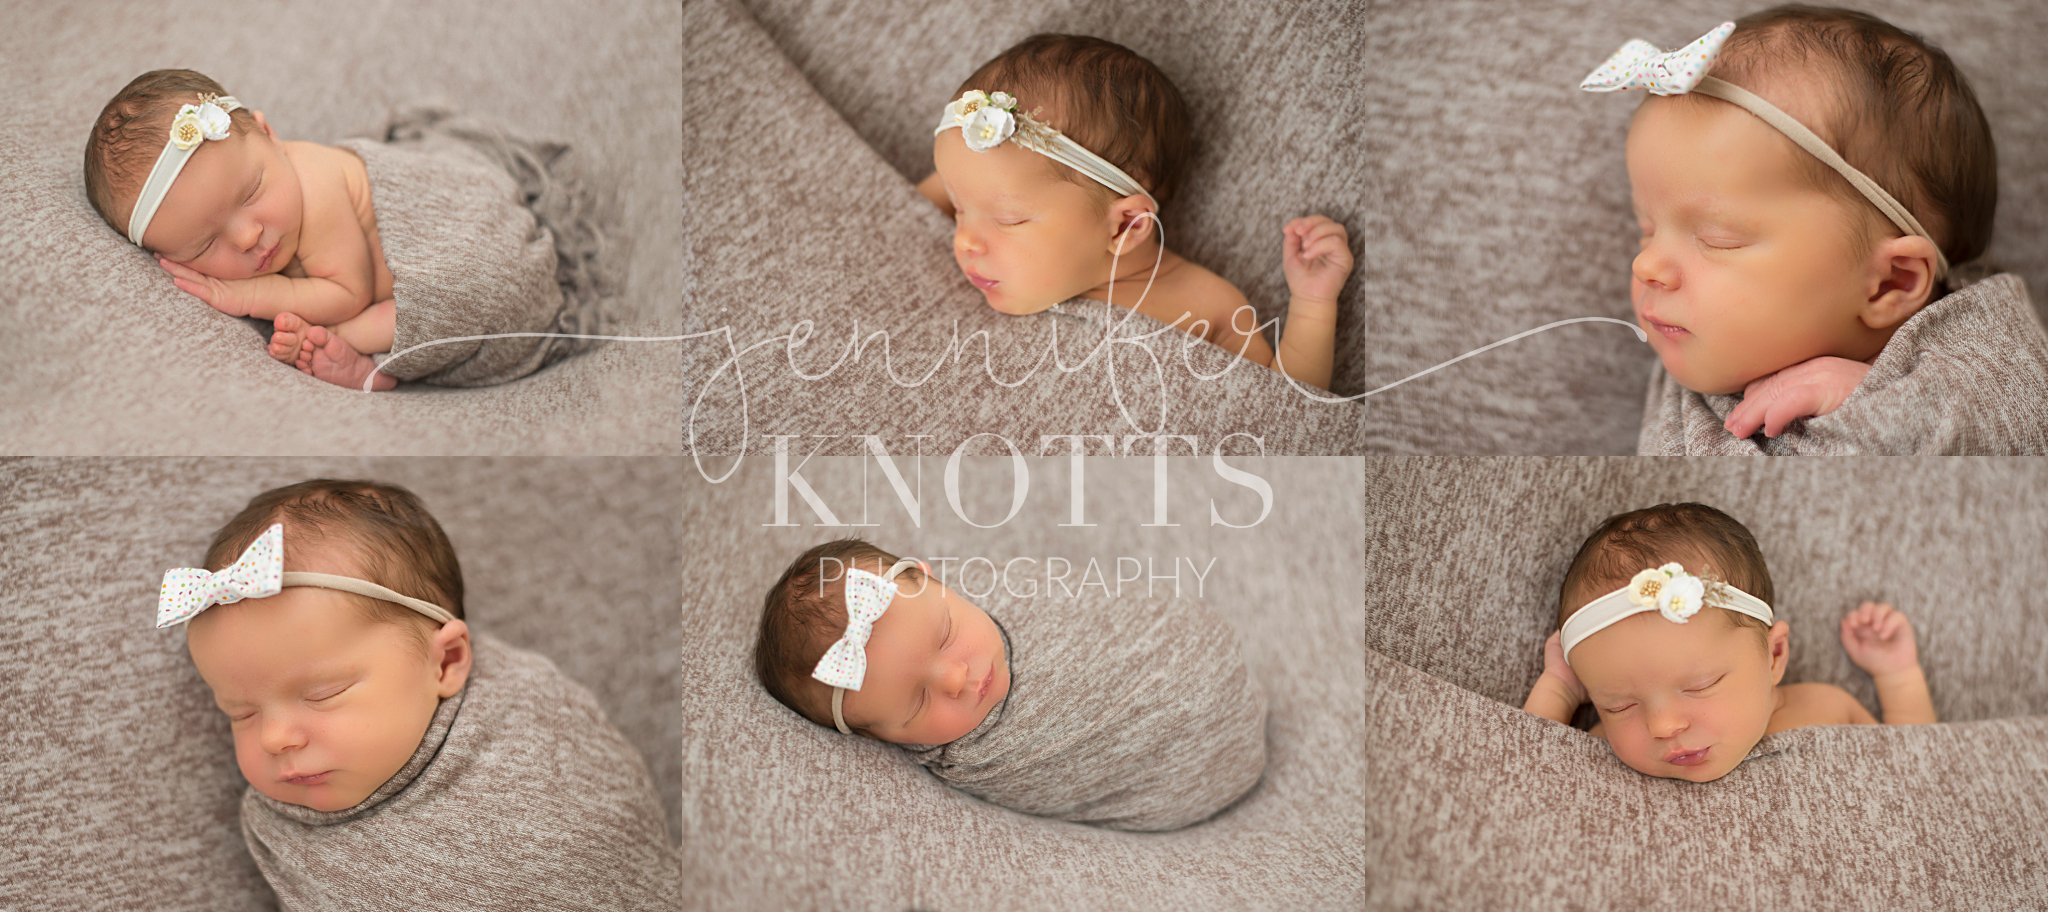 wilmington nc baby photographer